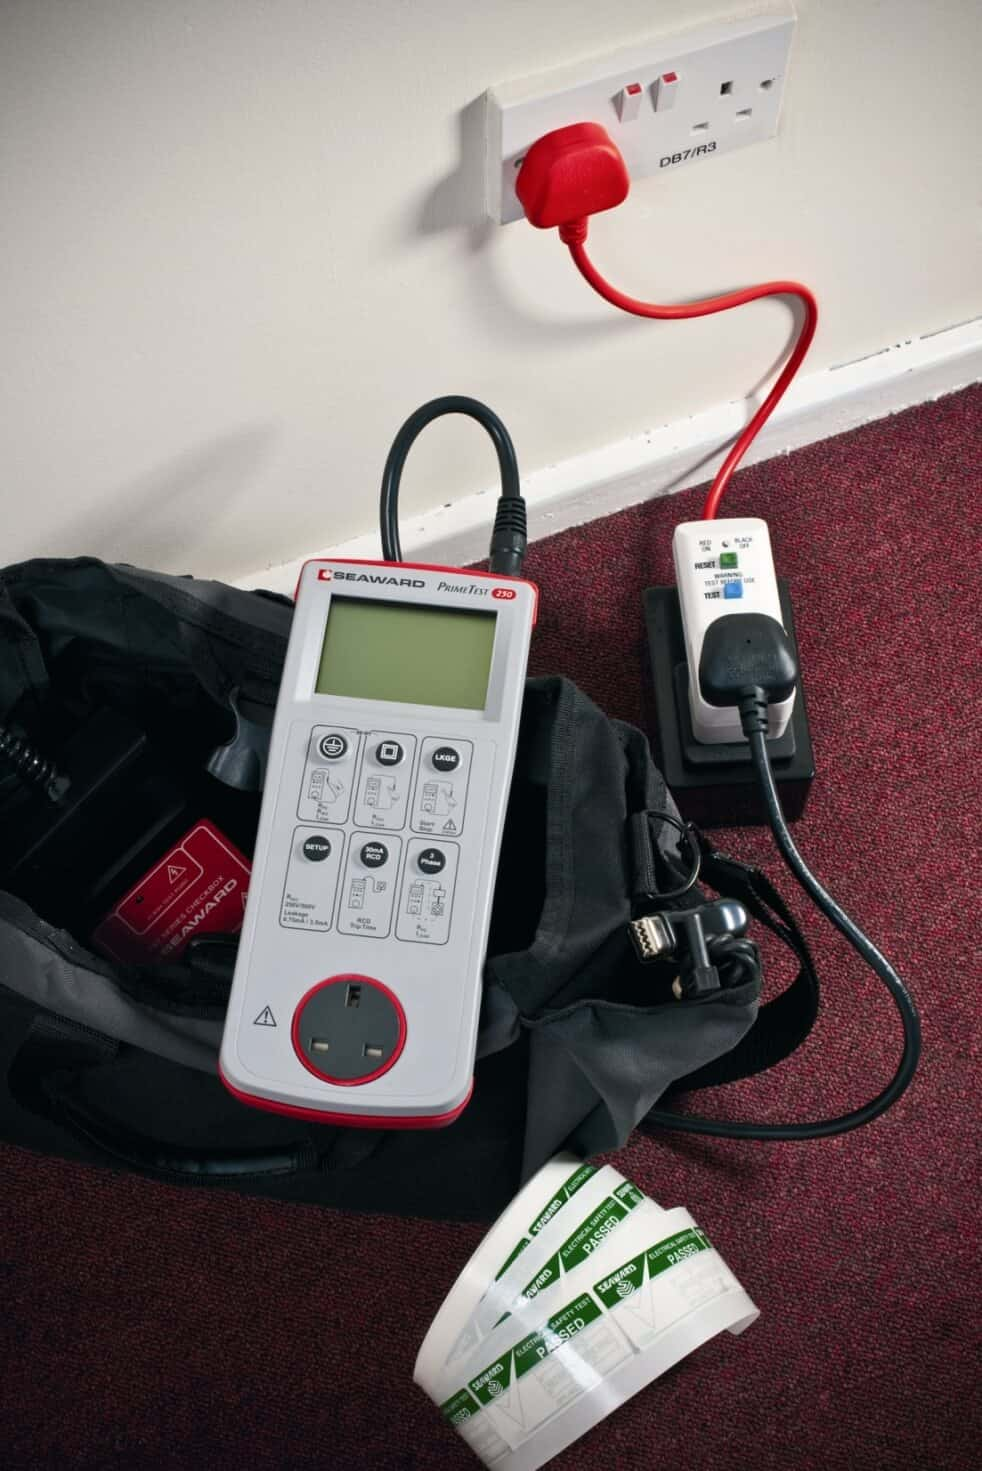 Leaflet For Hse Maintaining Portable Electrical Equipment In Offices And Other Low Risk Environments